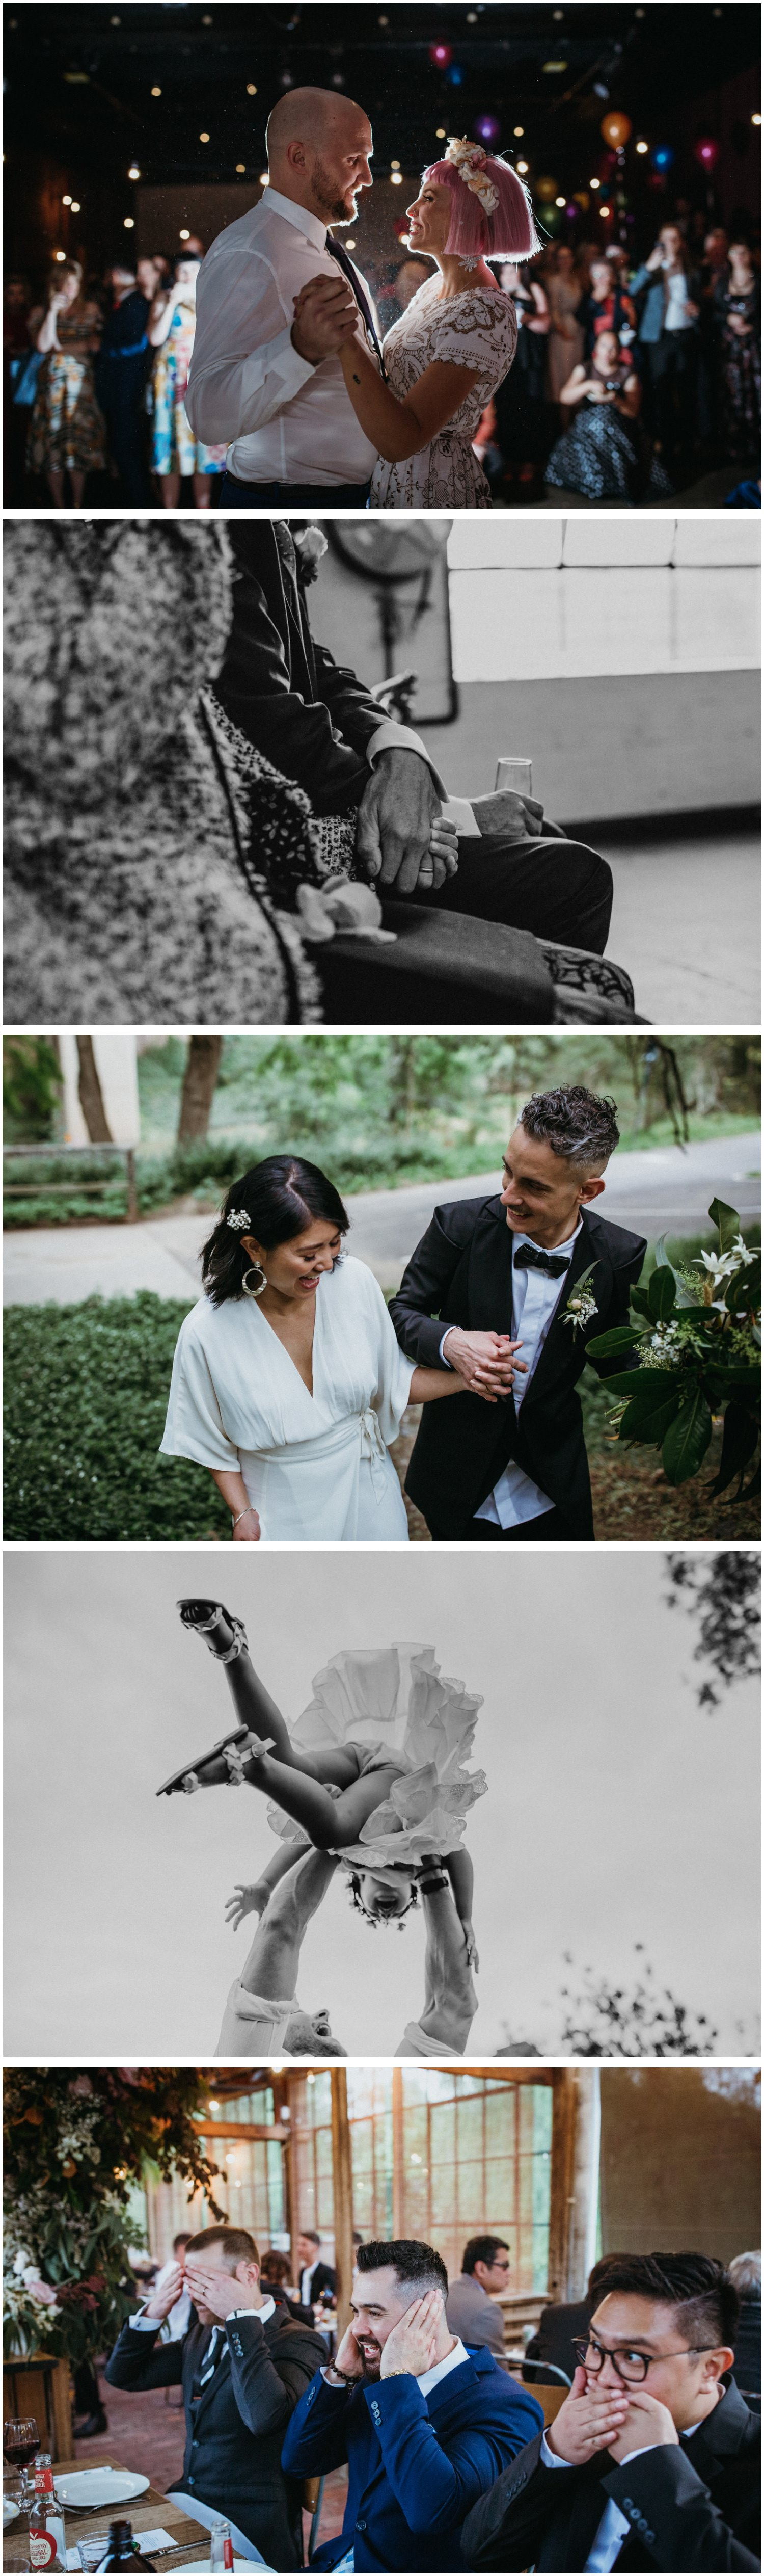 Melbourne Wedding Photographer - 2018 in review -766A6399.jpg